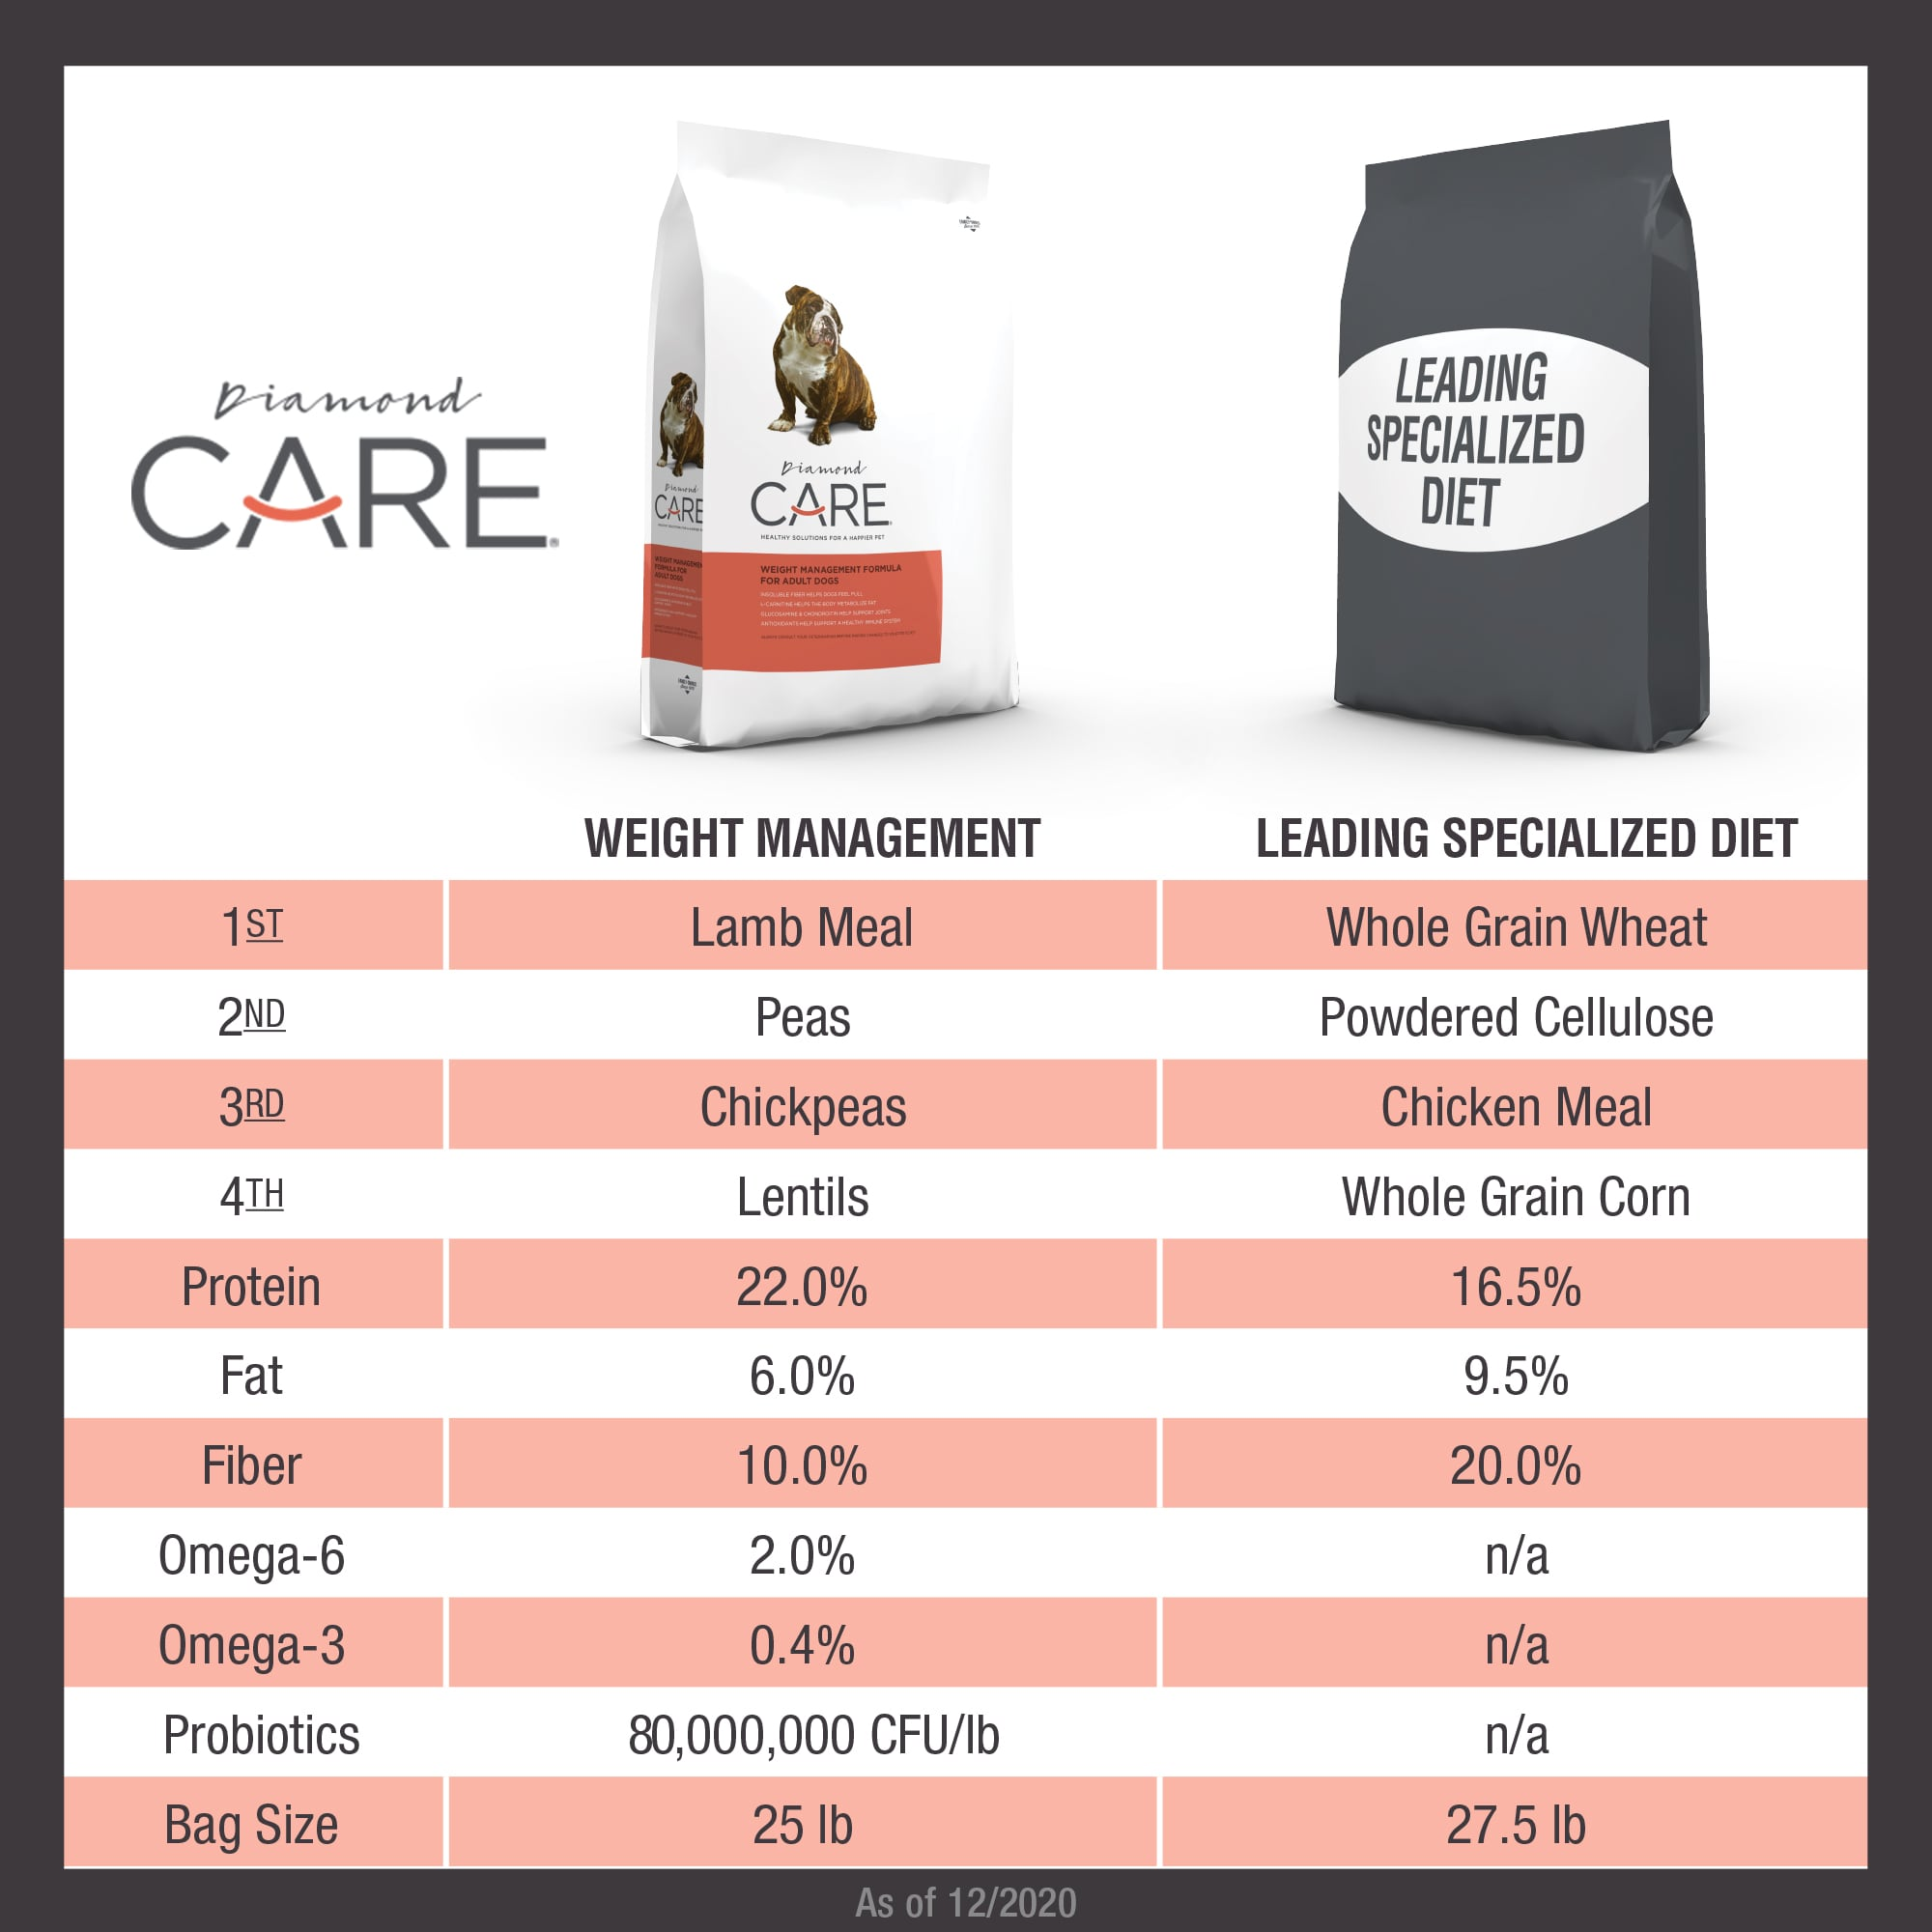 Diamond CARE Weight Management Formula for Adult Dogs Comparison Chart with Competitor | Diamond Pet Foods